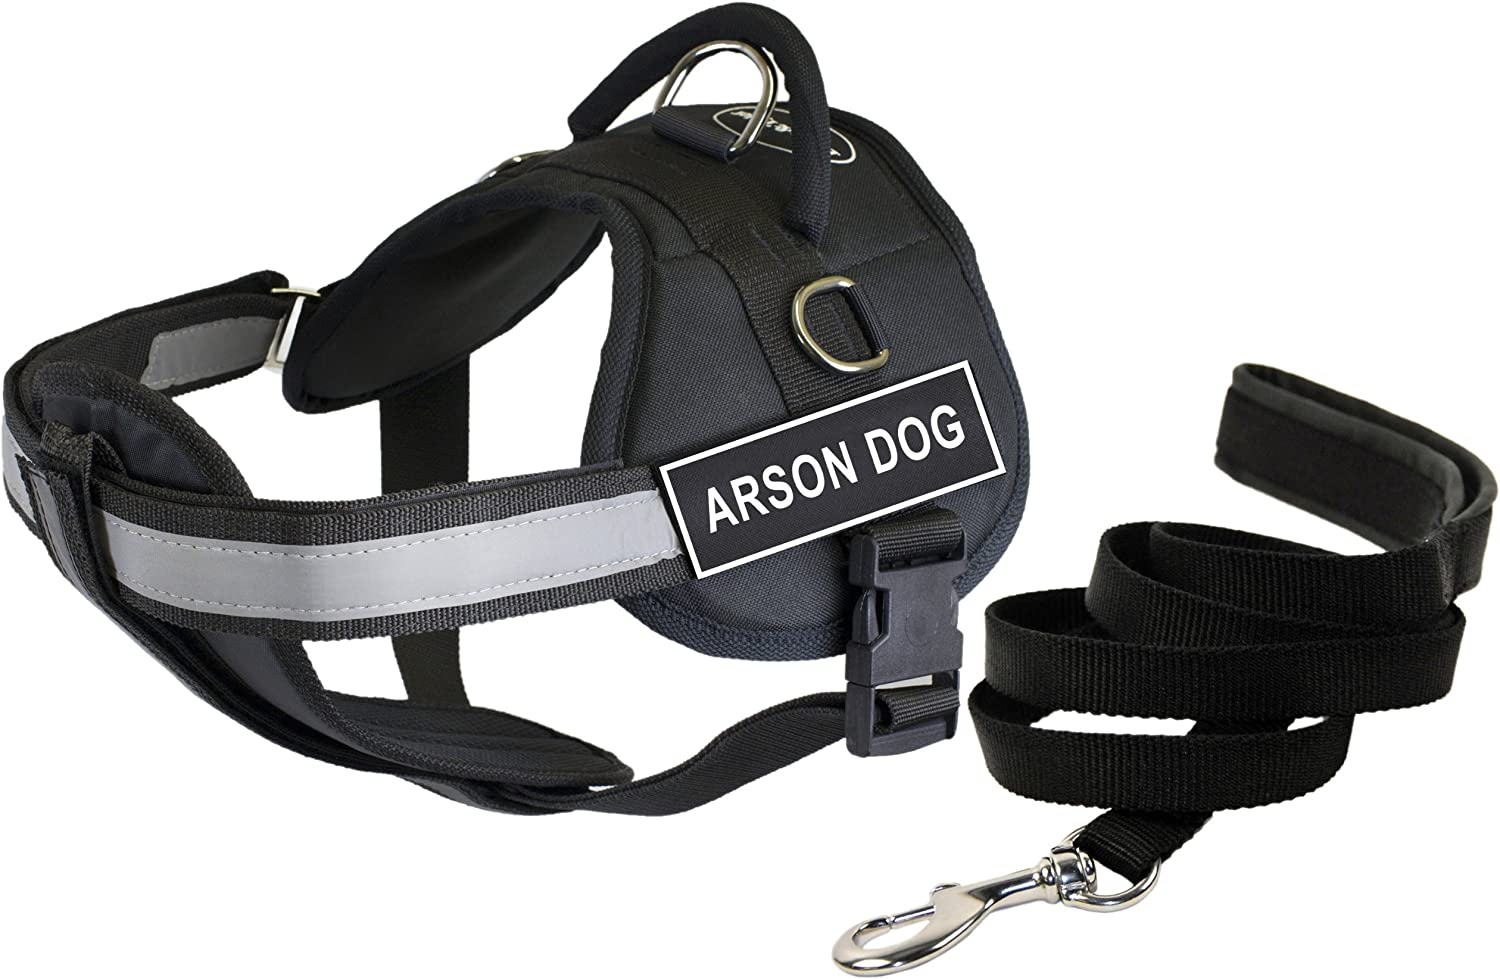 Dean & Tyler's DT Works ARSON DOG Harness with Chest Padding, XSmall, and 6 ft Padded Puppy Leash.